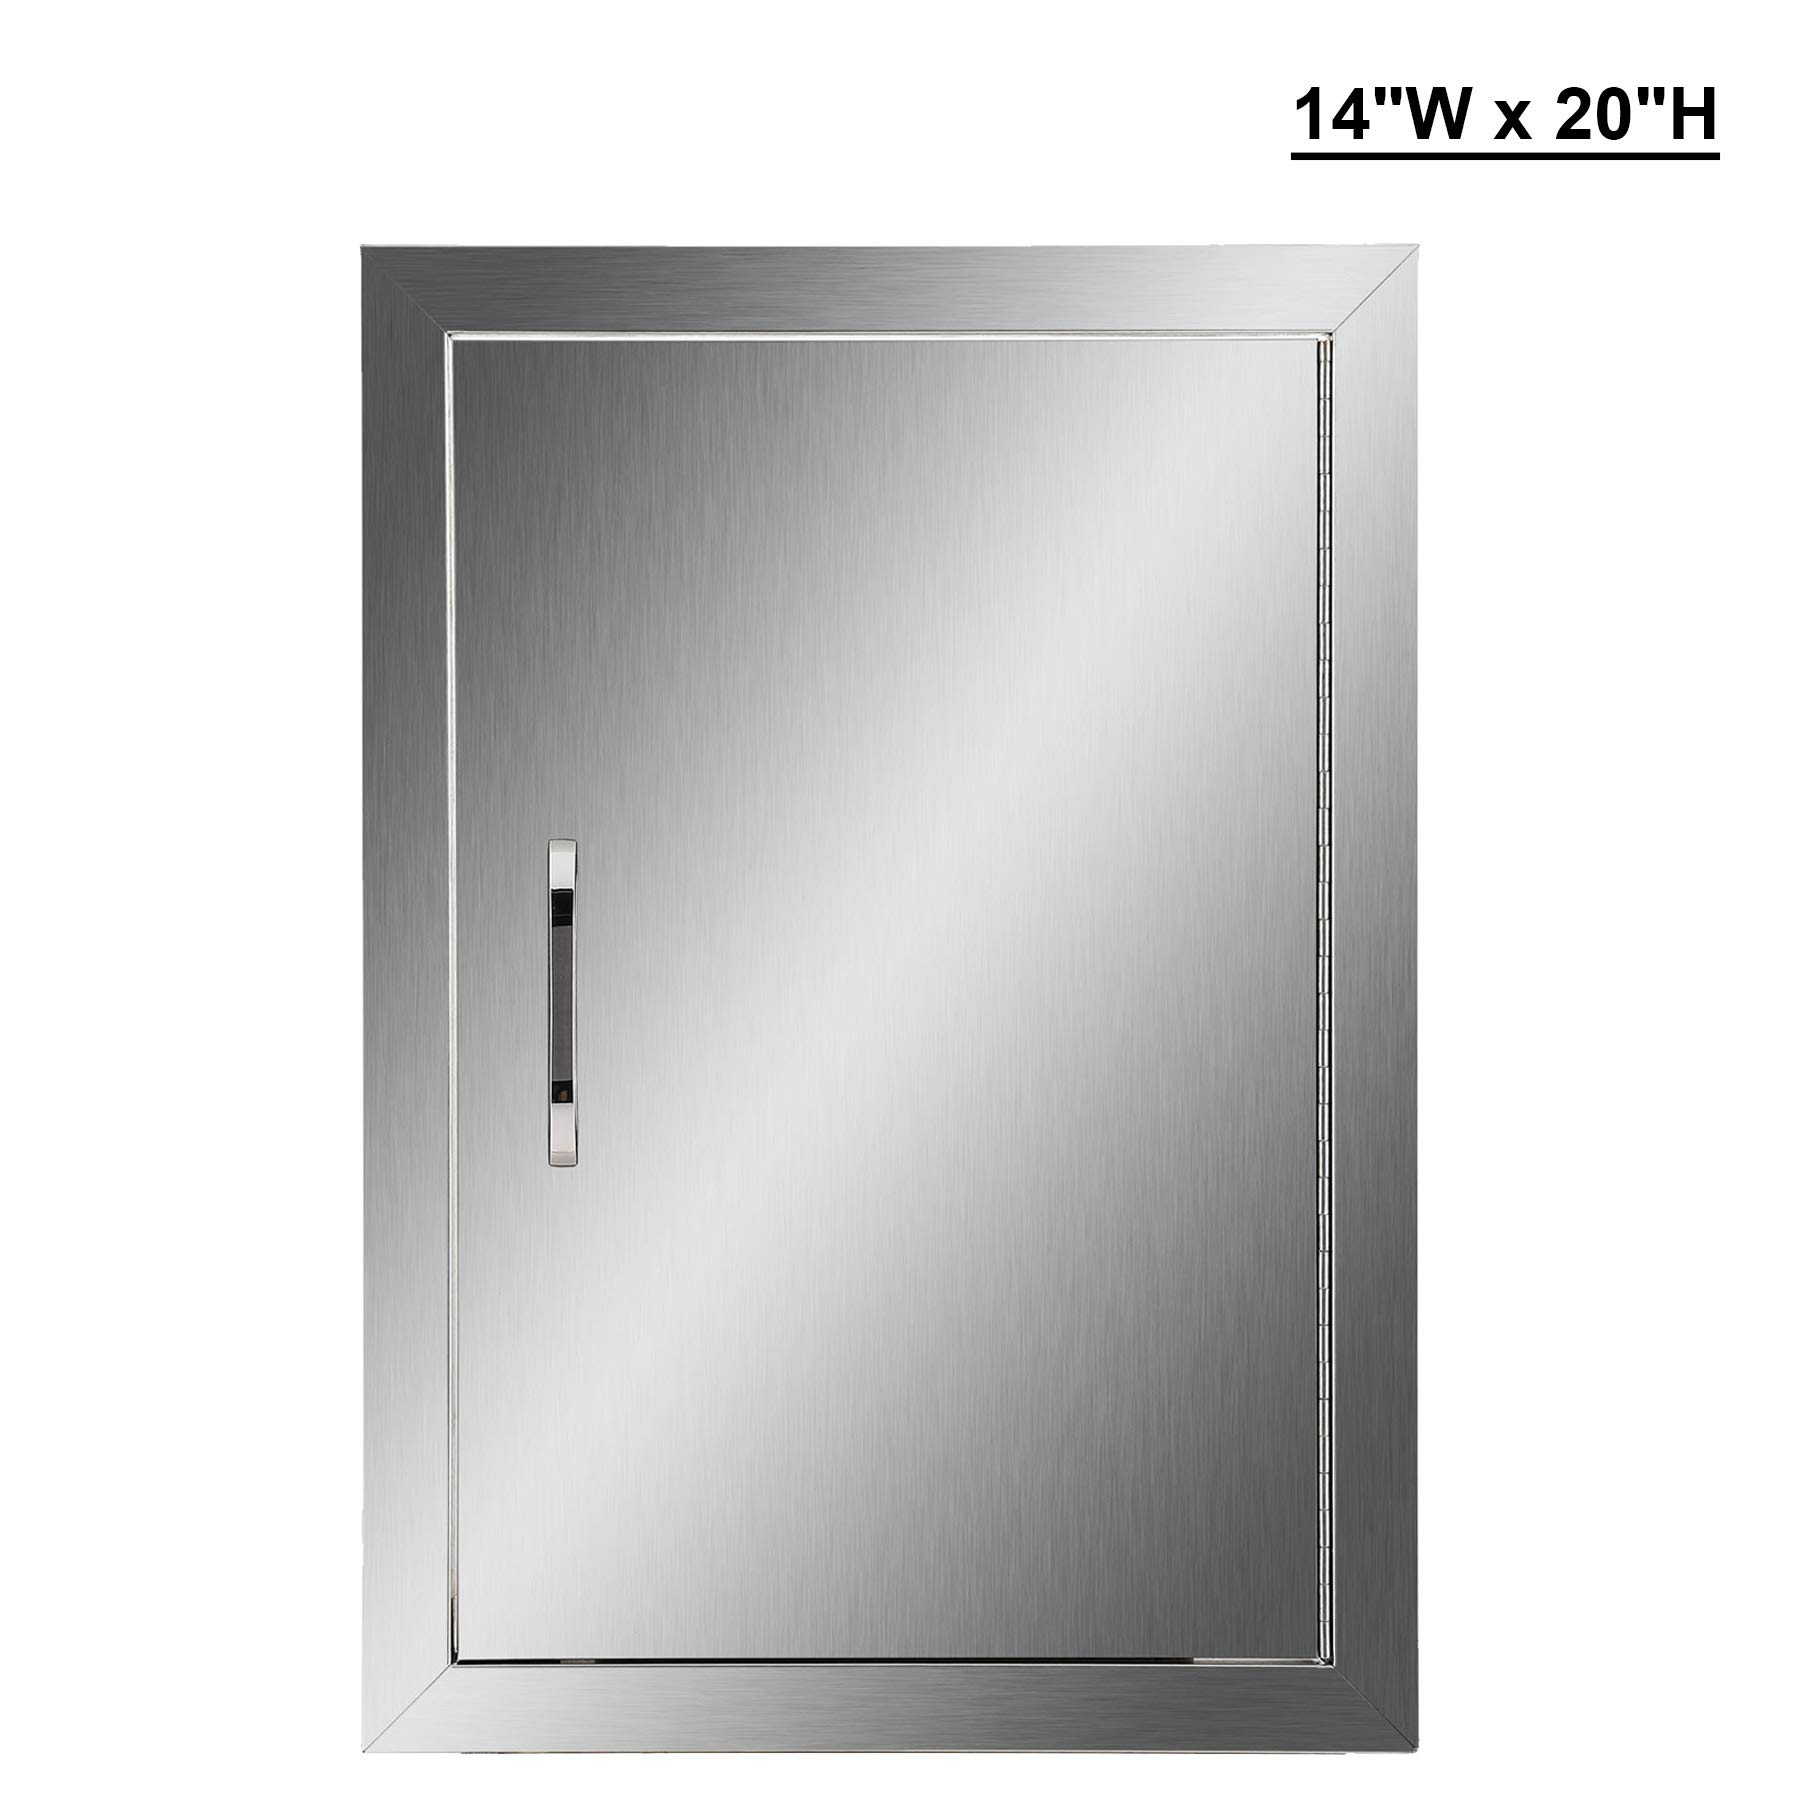 CO-Z Outdoor Kitchen Doors, 304 Stainless Steel Single BBQ Access Door for Outdoor Summer Kitchen Island, Grilling Station, Outside Cabinet, Barbeque Grill, Built-in SS BBQ Island Door (14'' W x 20'' H)